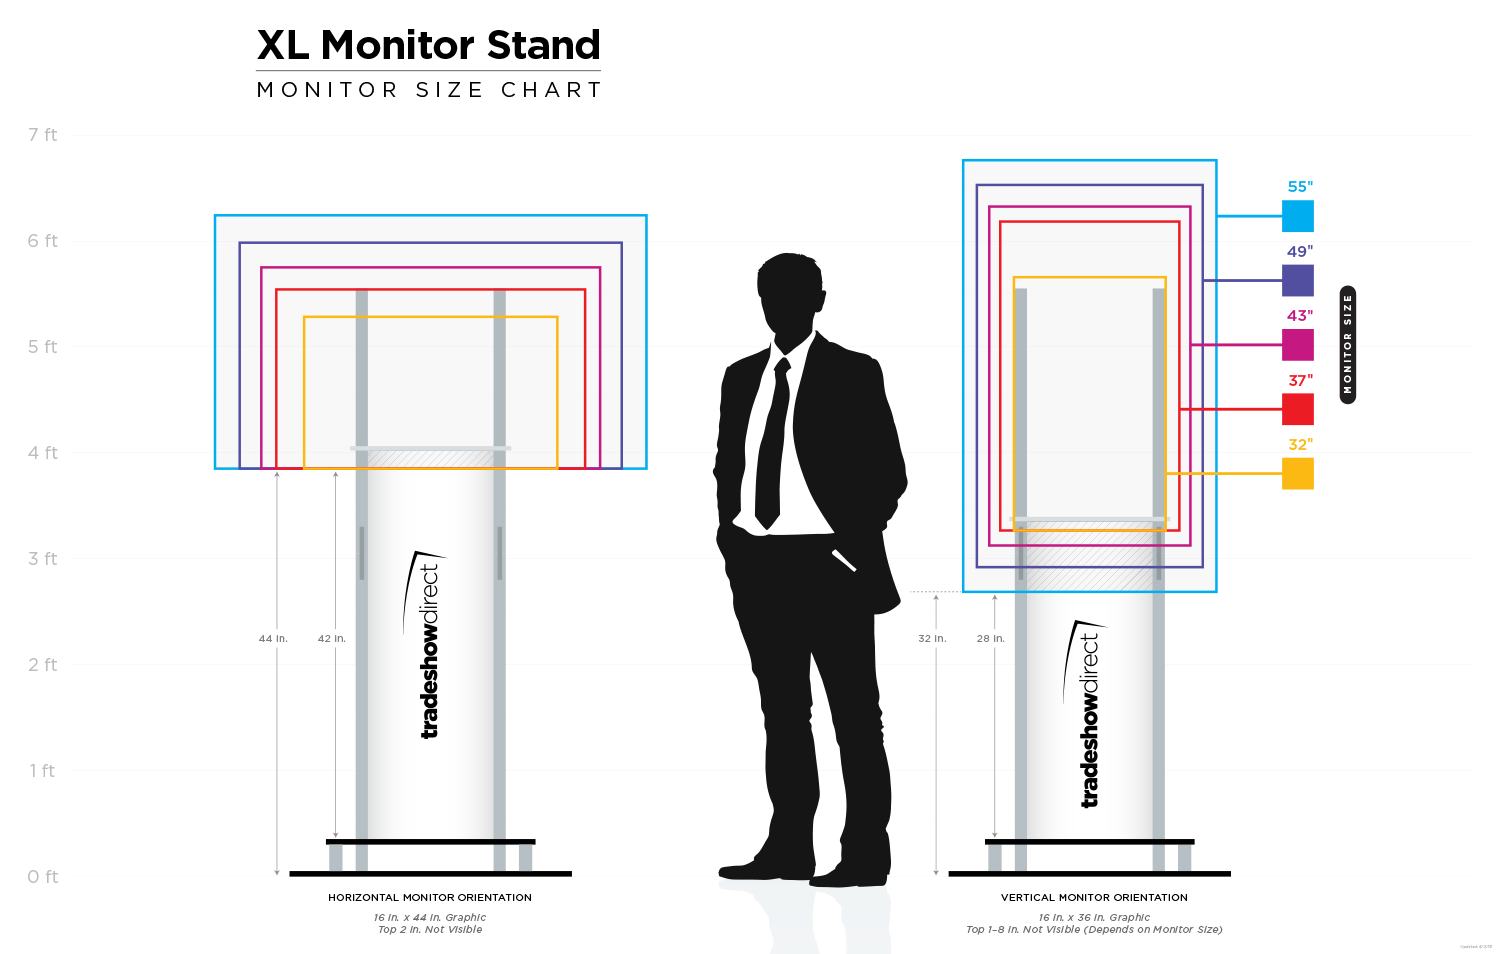 Chart Showing Various Monitor Sizes on the XL Monitor Stand